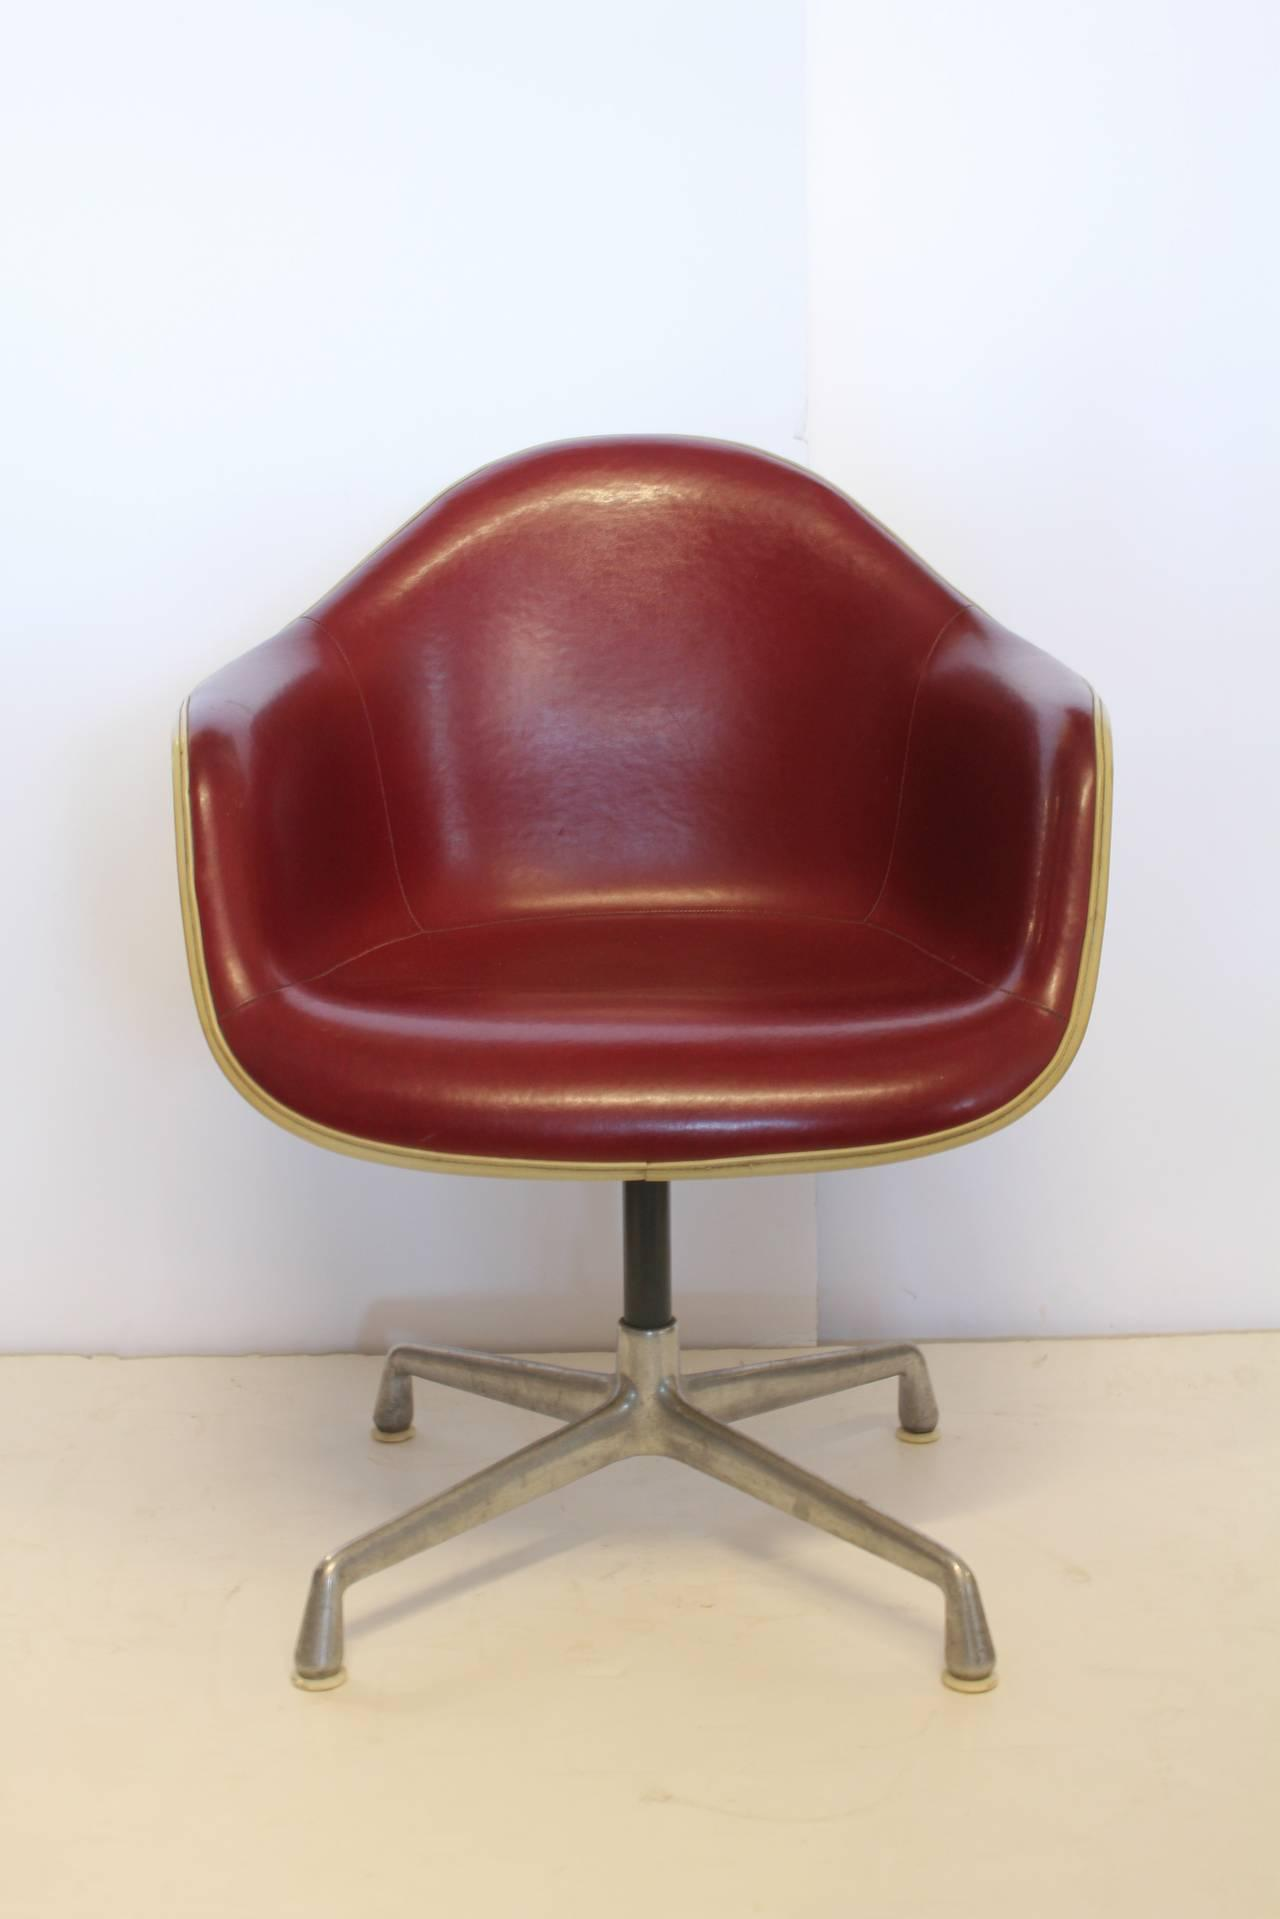 Merveilleux Charles Eames Swivel Bucket Chair For Herman Miller   Image 2 Of 2